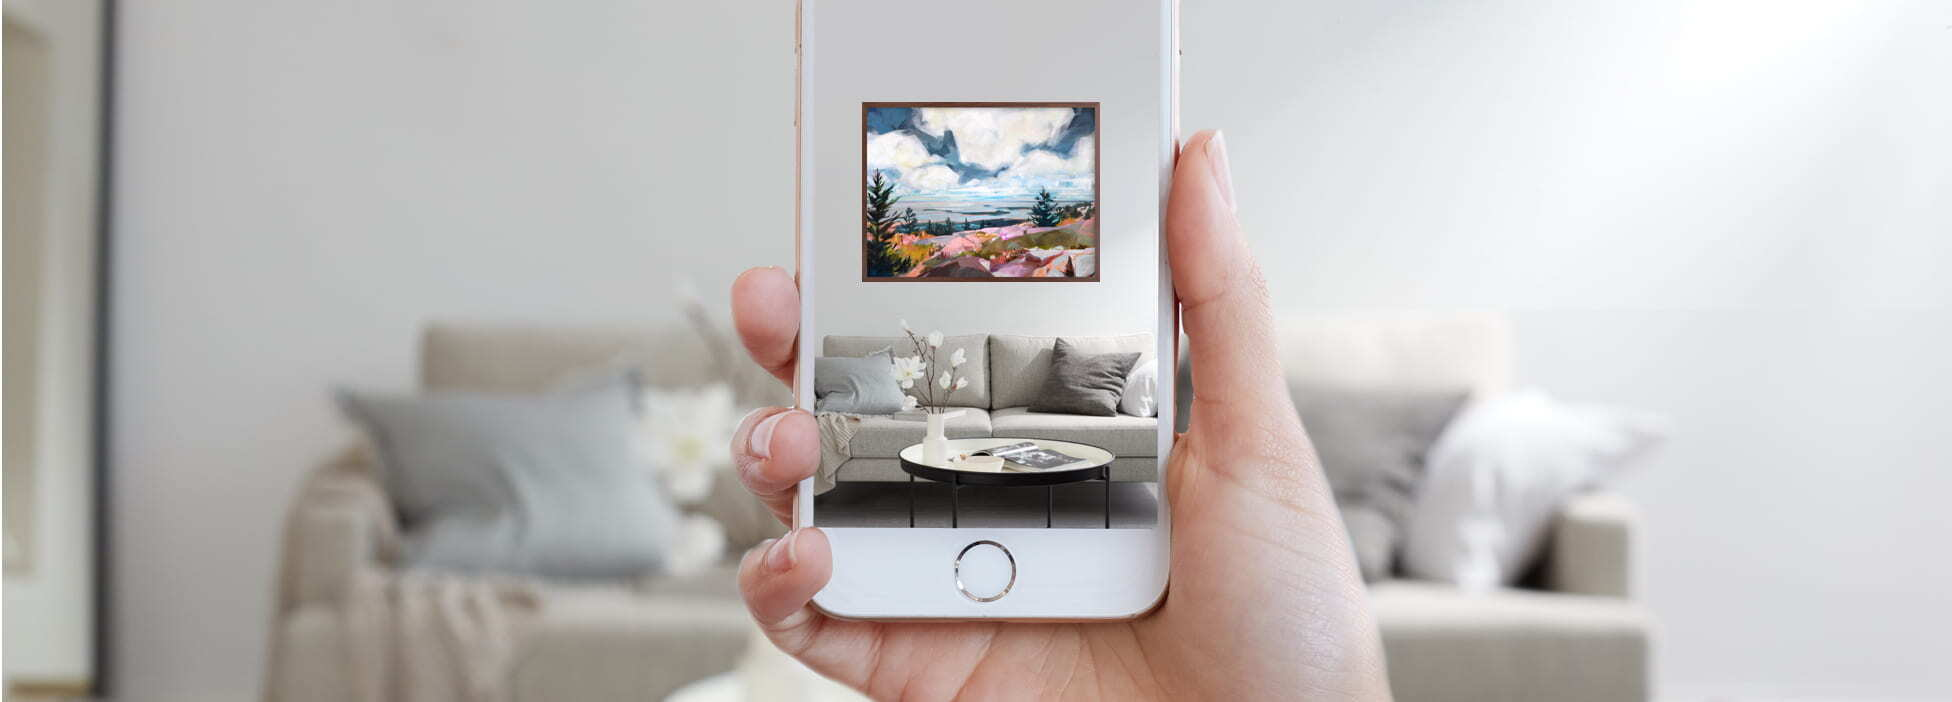 View art in your room